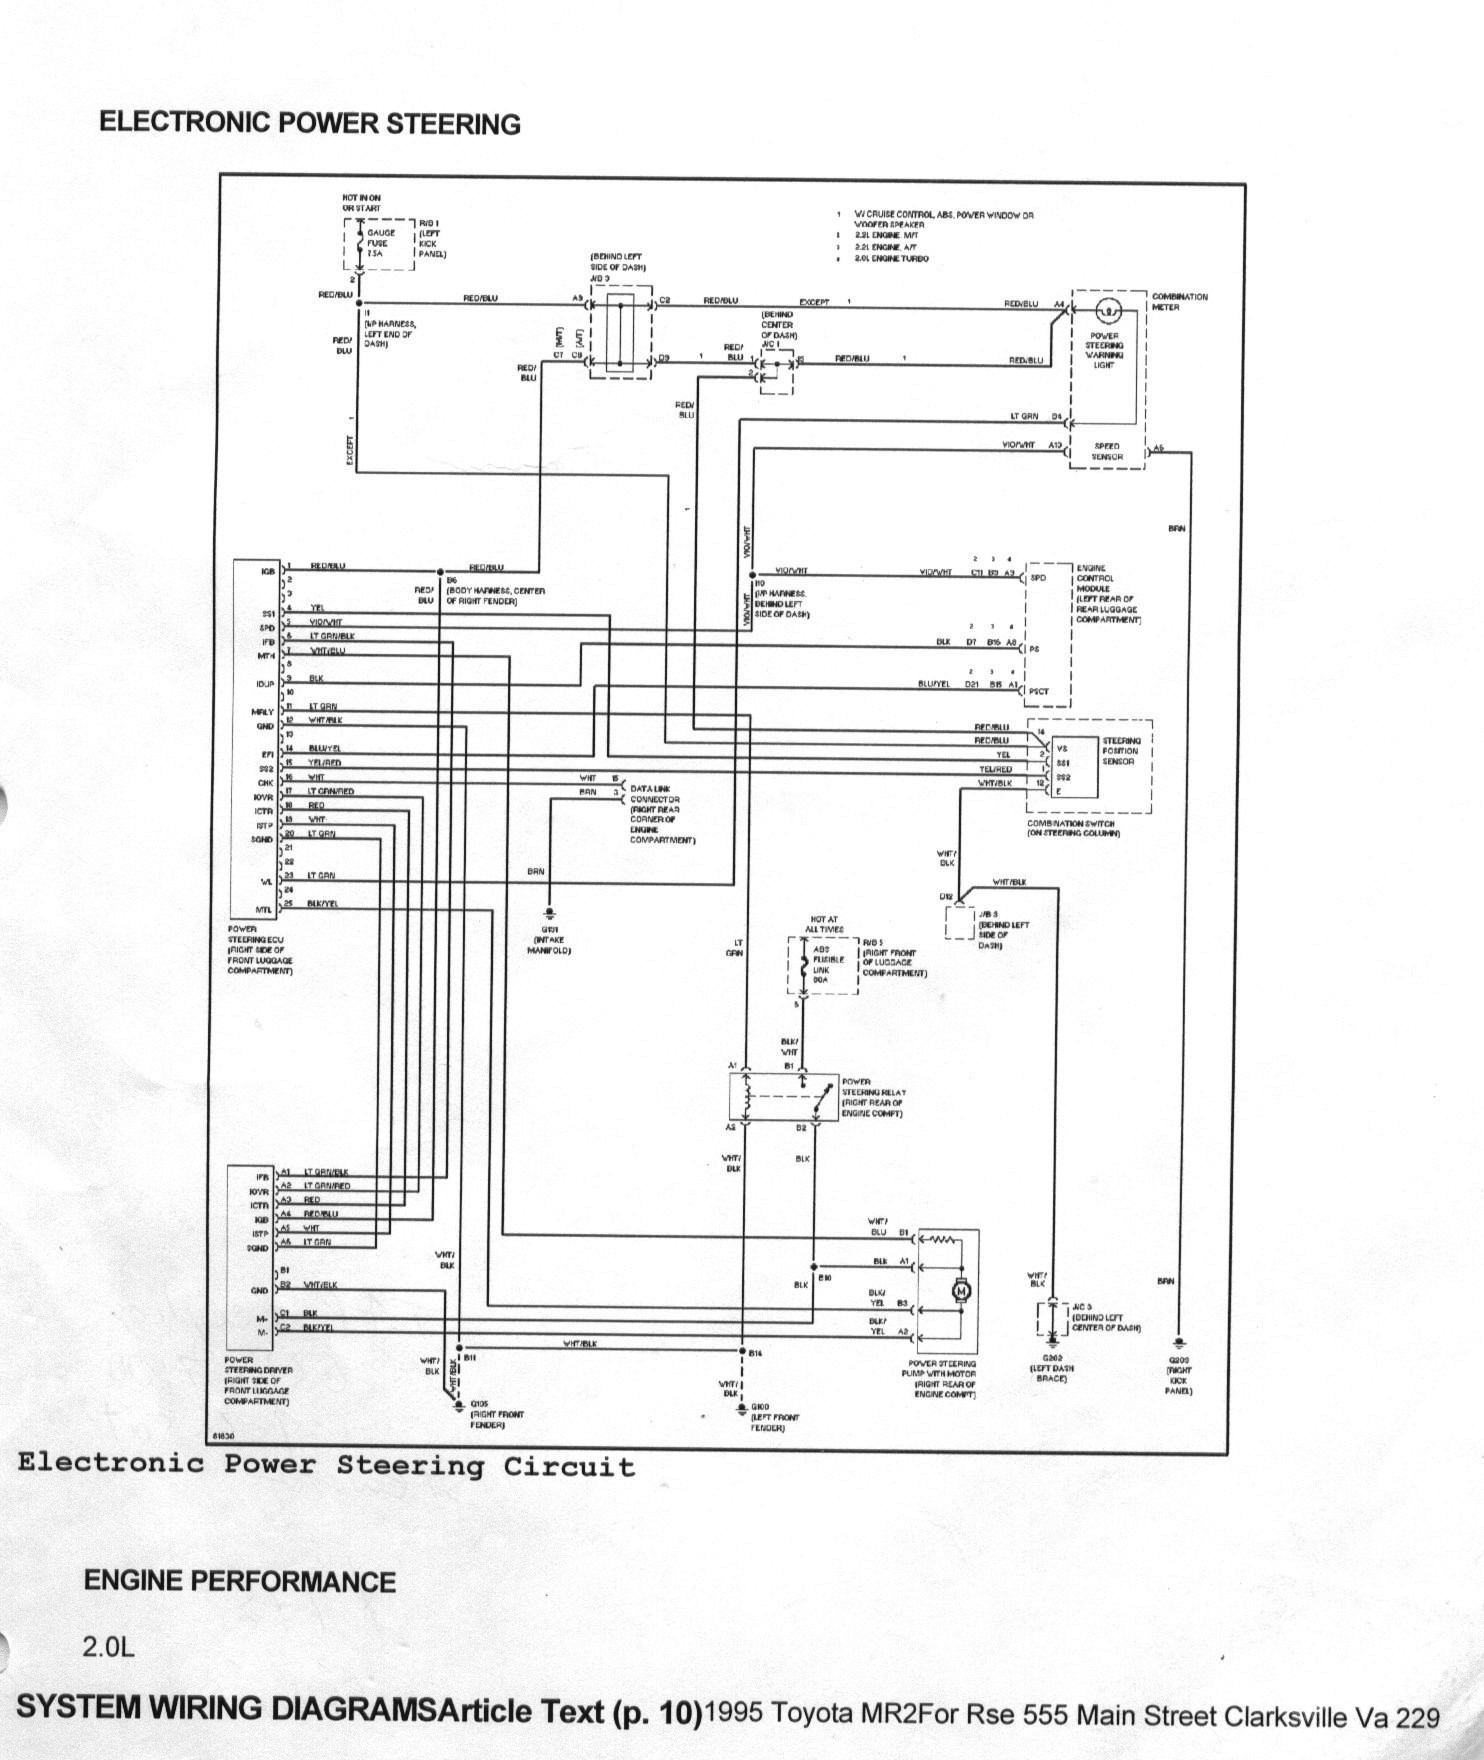 Toyota Mr2 Wiring Auto Electrical Diagram Harness 1991